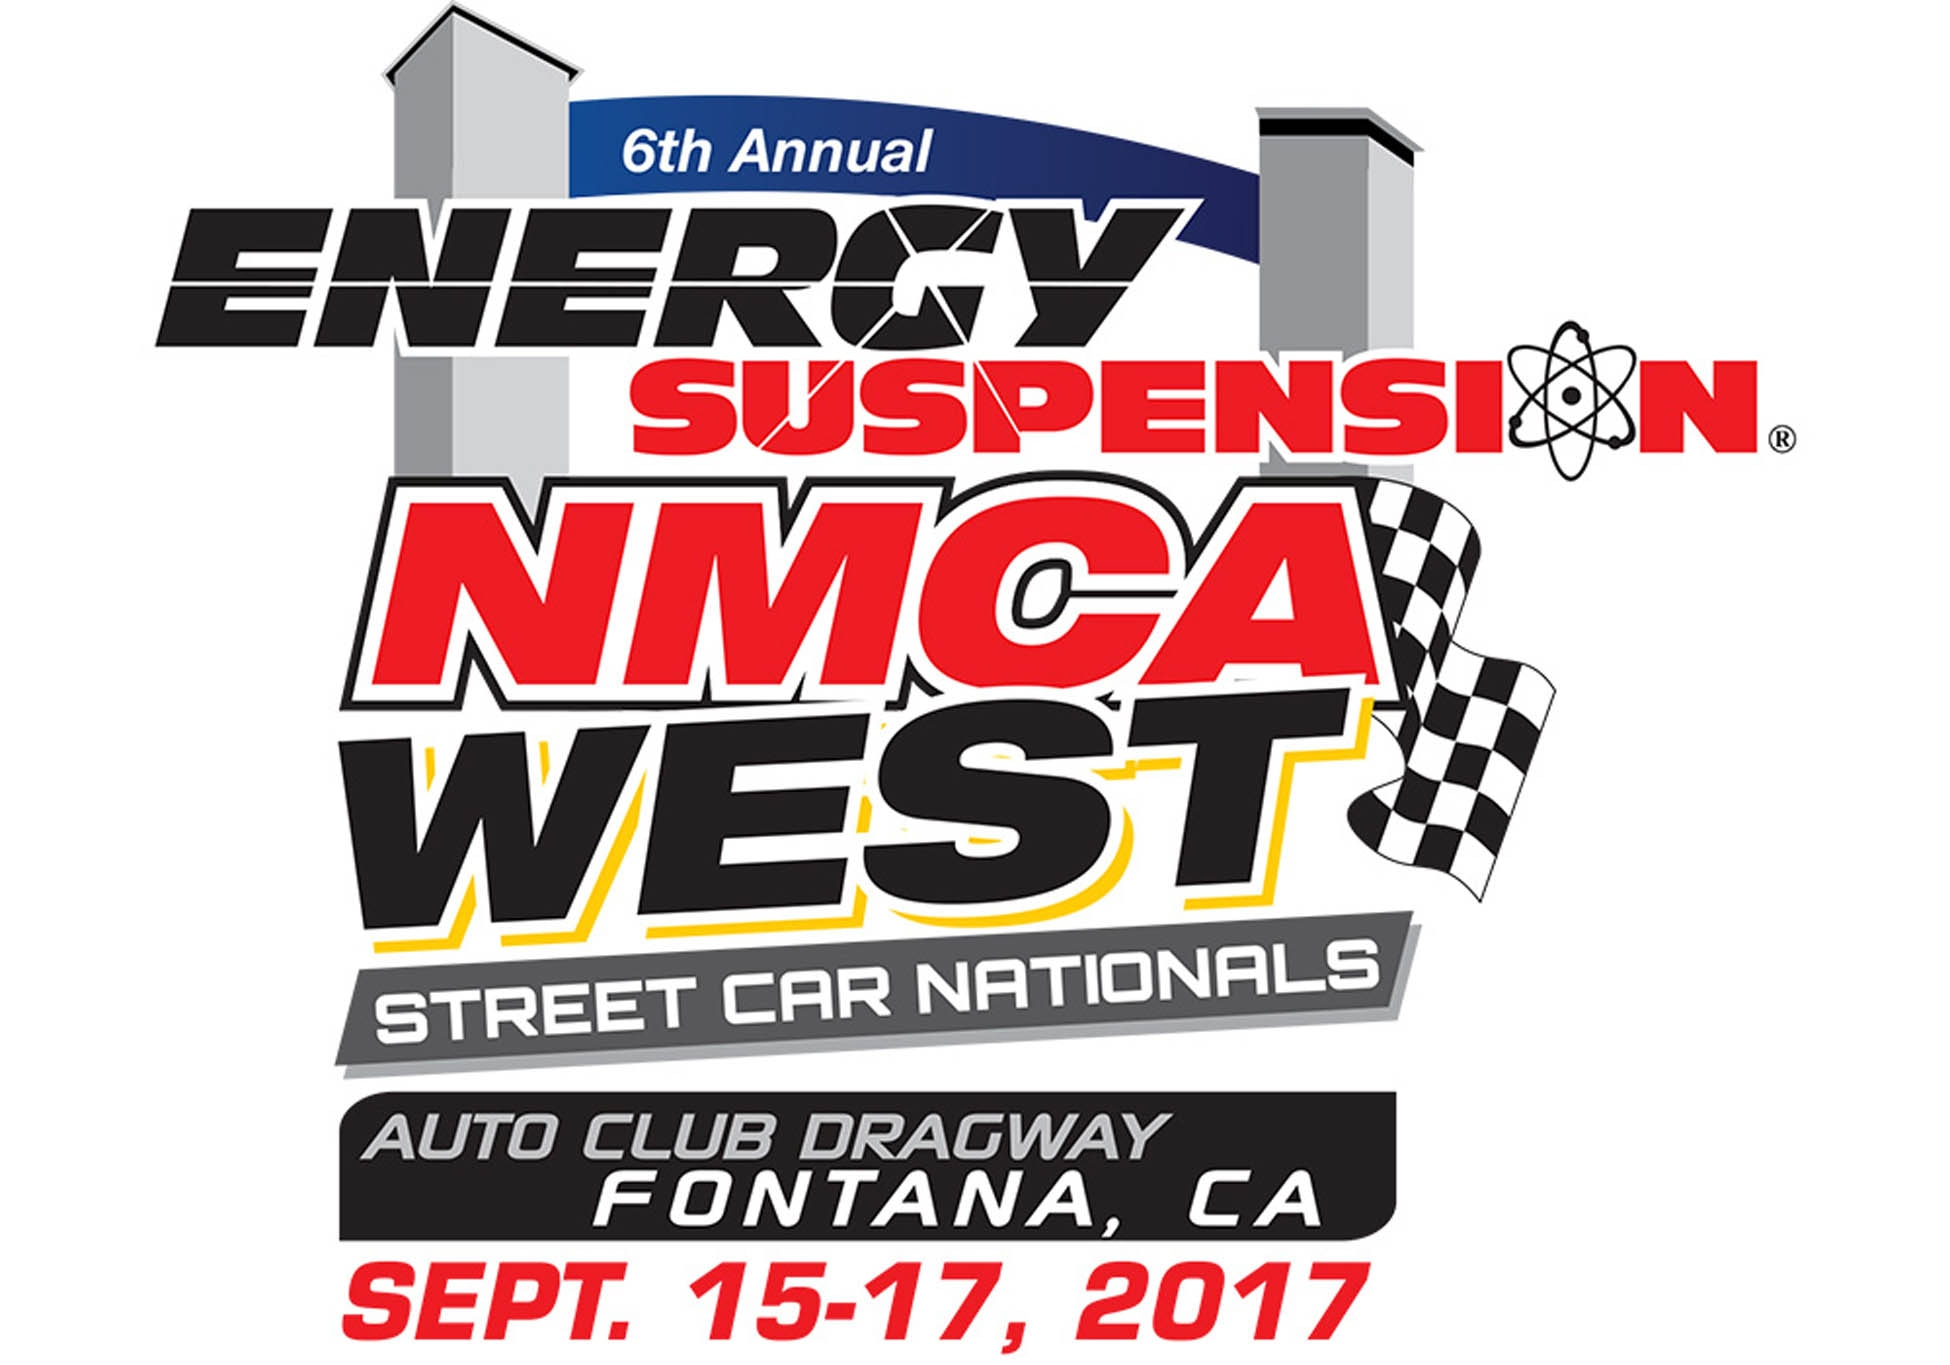 002 Nmca West Fontana Photo Gallery